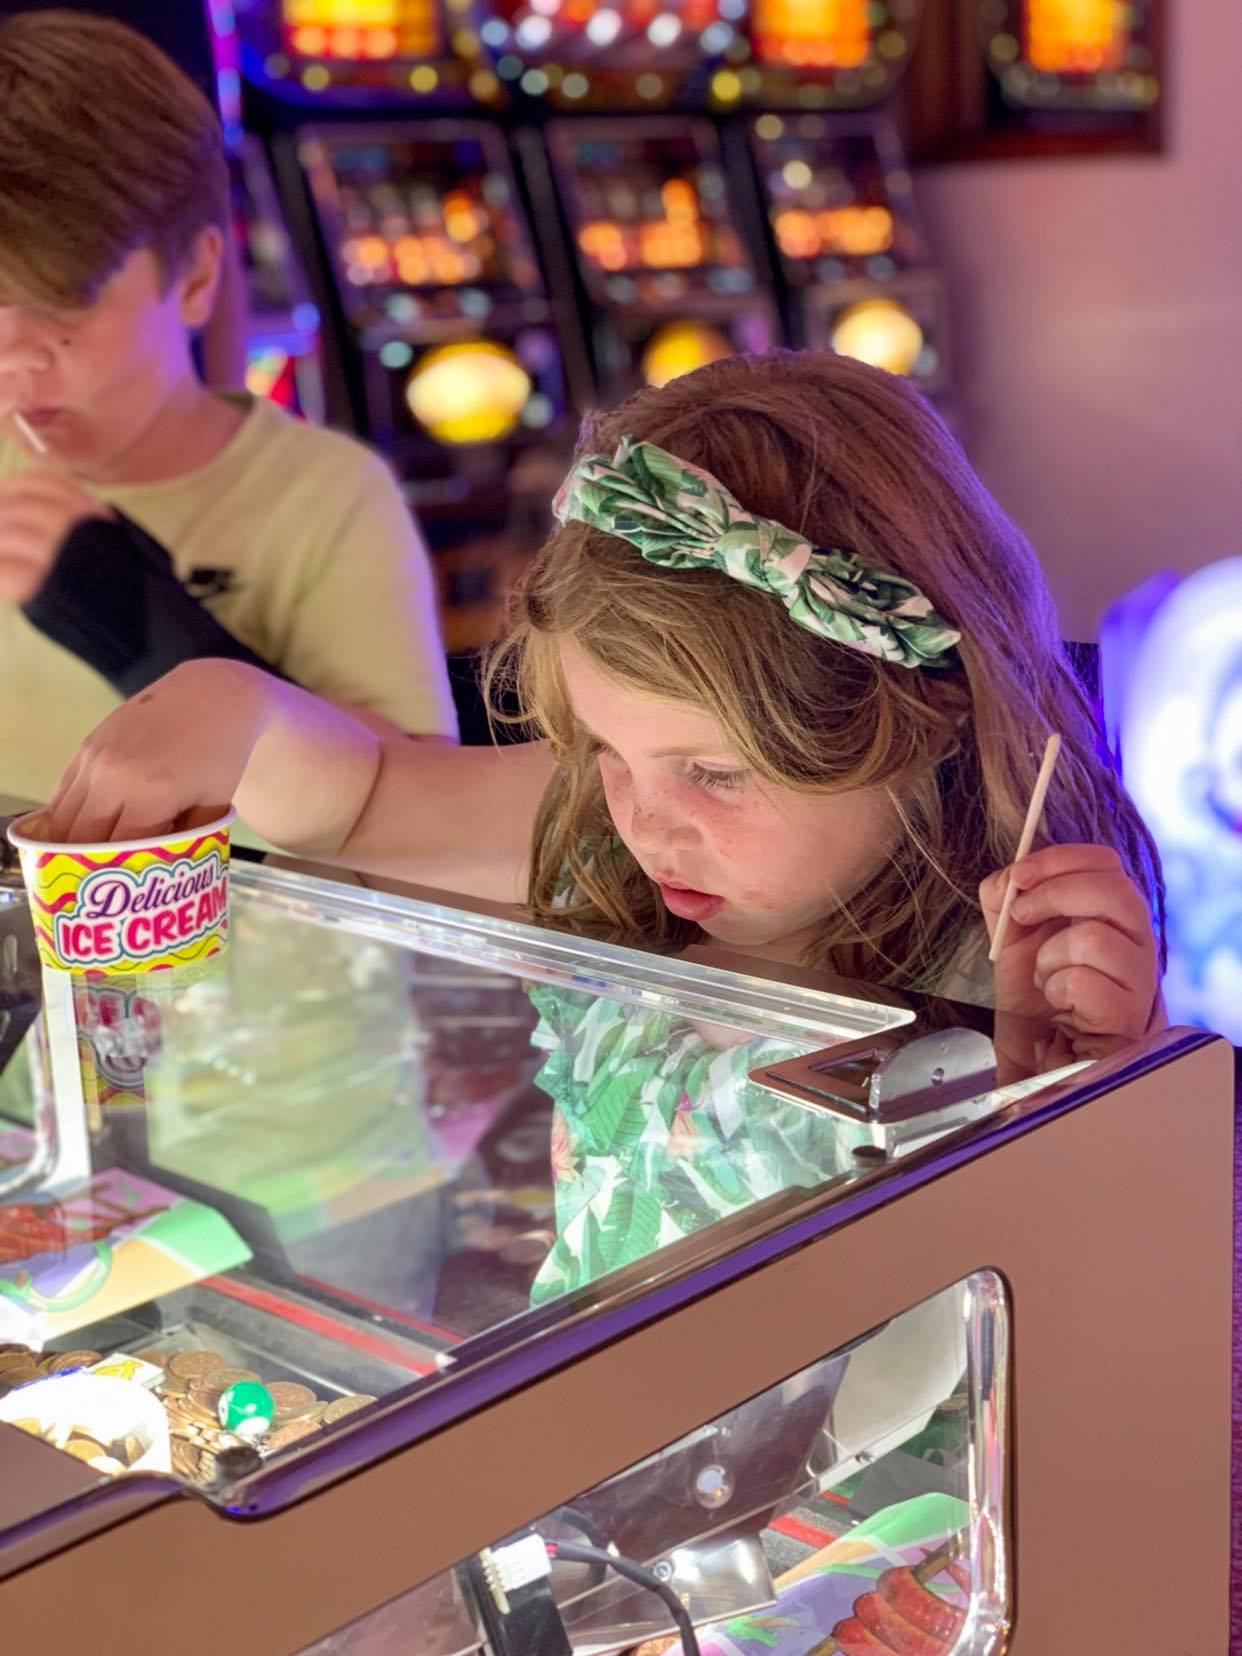 Wells next to the sea, arcades for kids, a suffolk mum holiday review